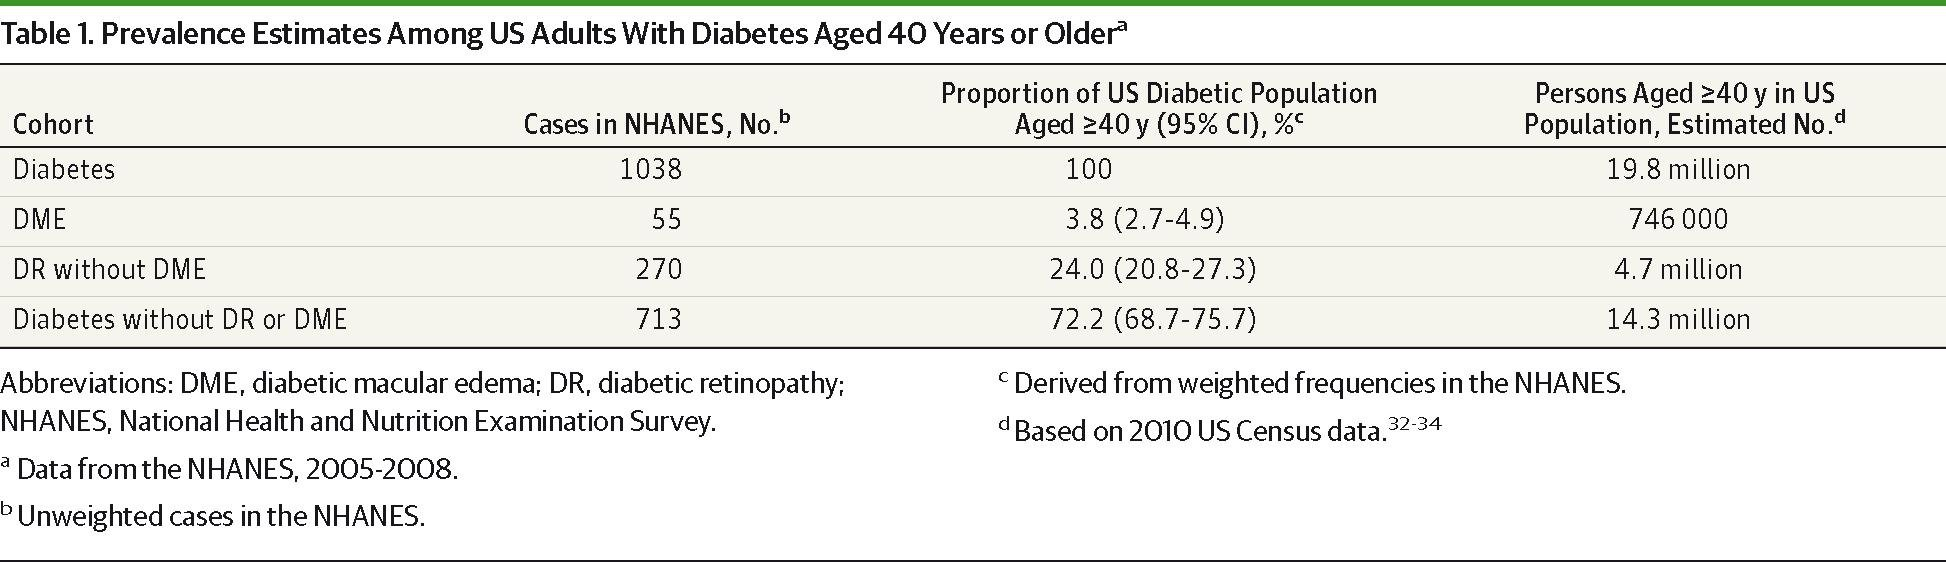 Prevalence Of And Risk Factors For Diabetic Macular Edema In The United States